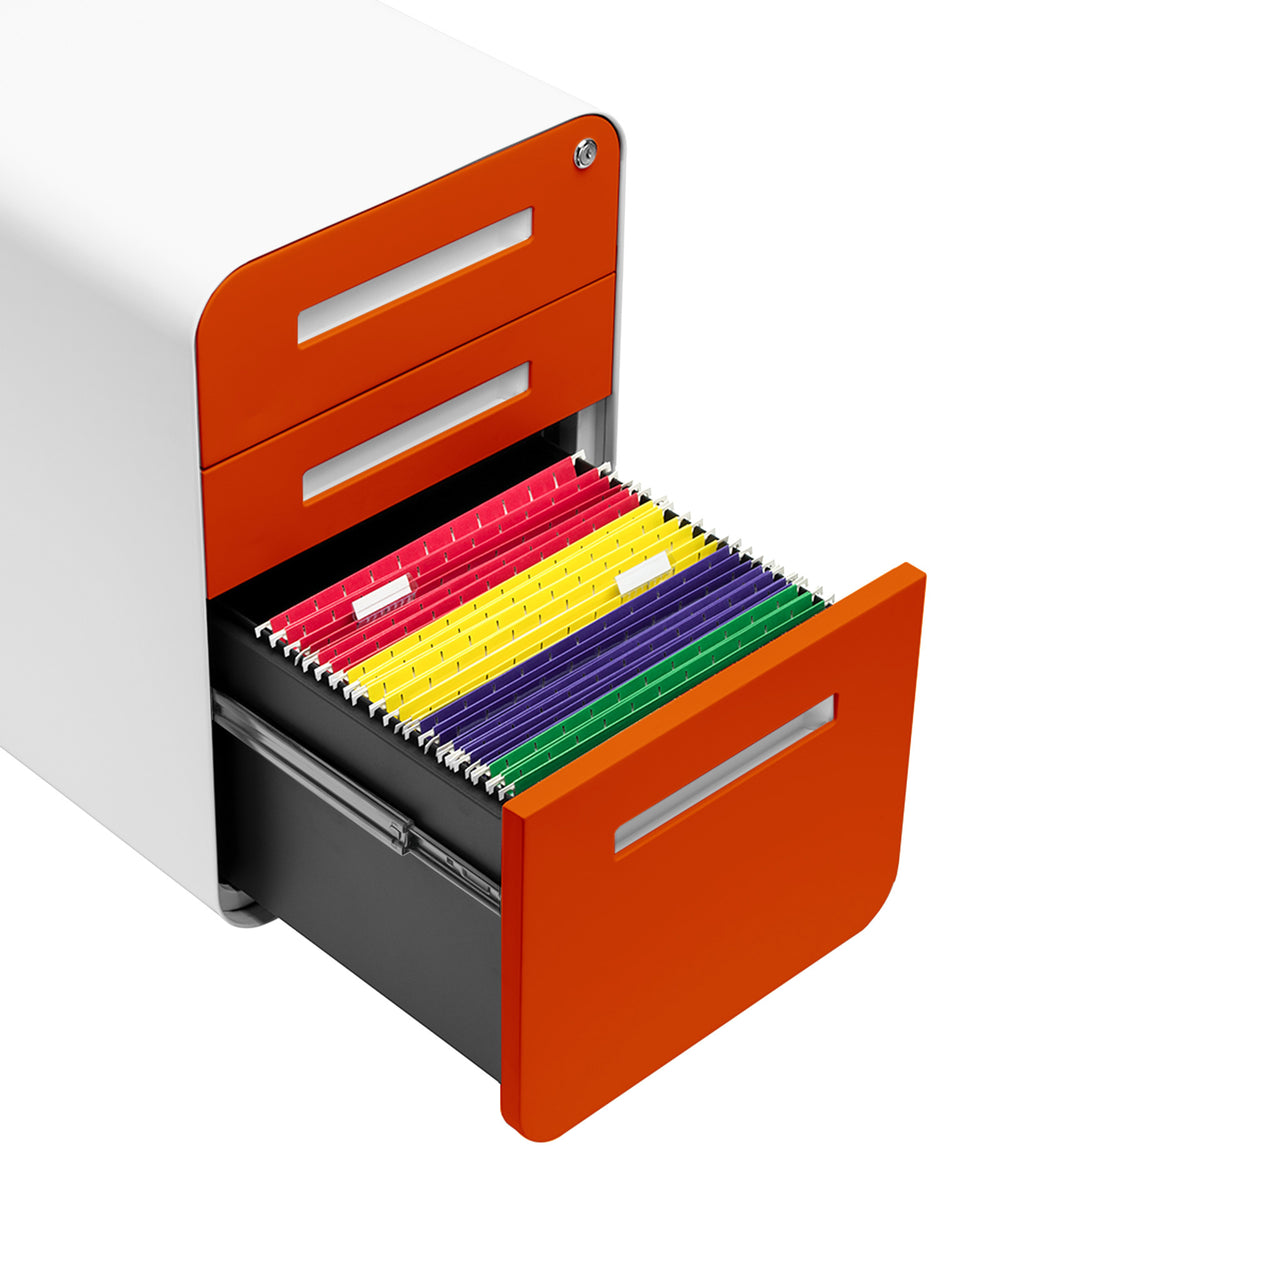 Stockpile Curve File Cabinet (Orange Faceplate)